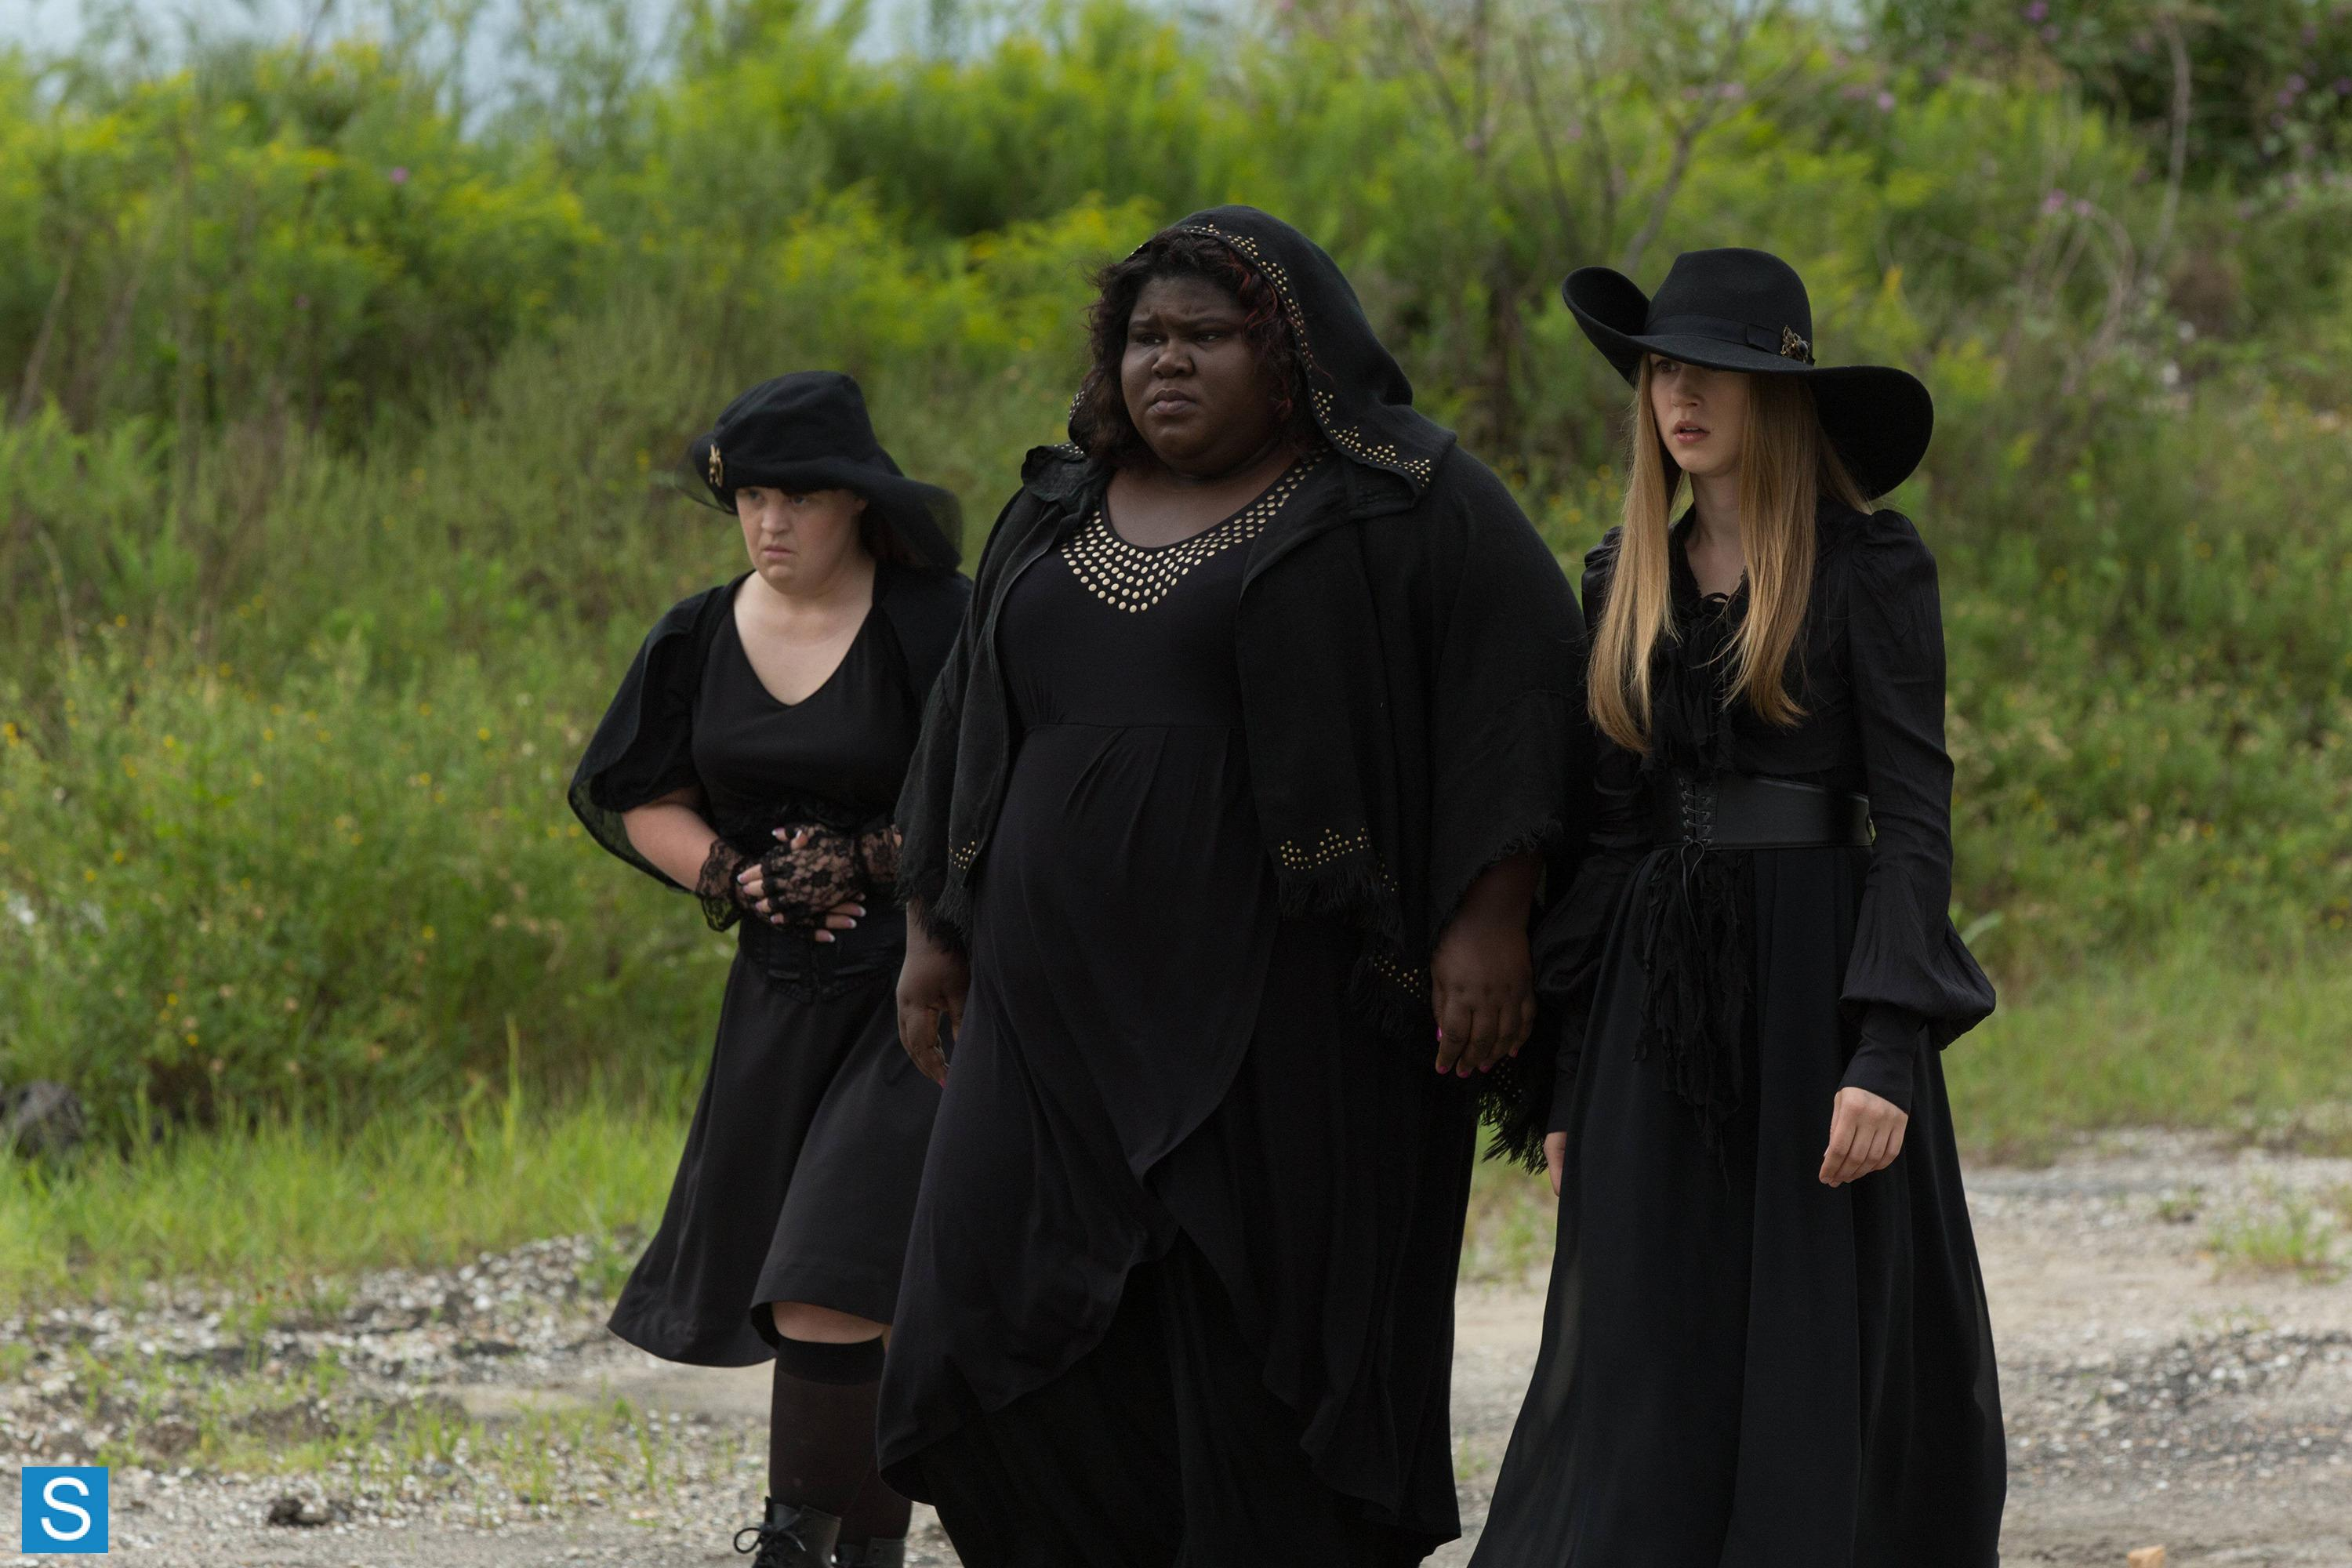 american-horror-story-episode-3-05-burn-witch-burn-promotional-photos-2_full